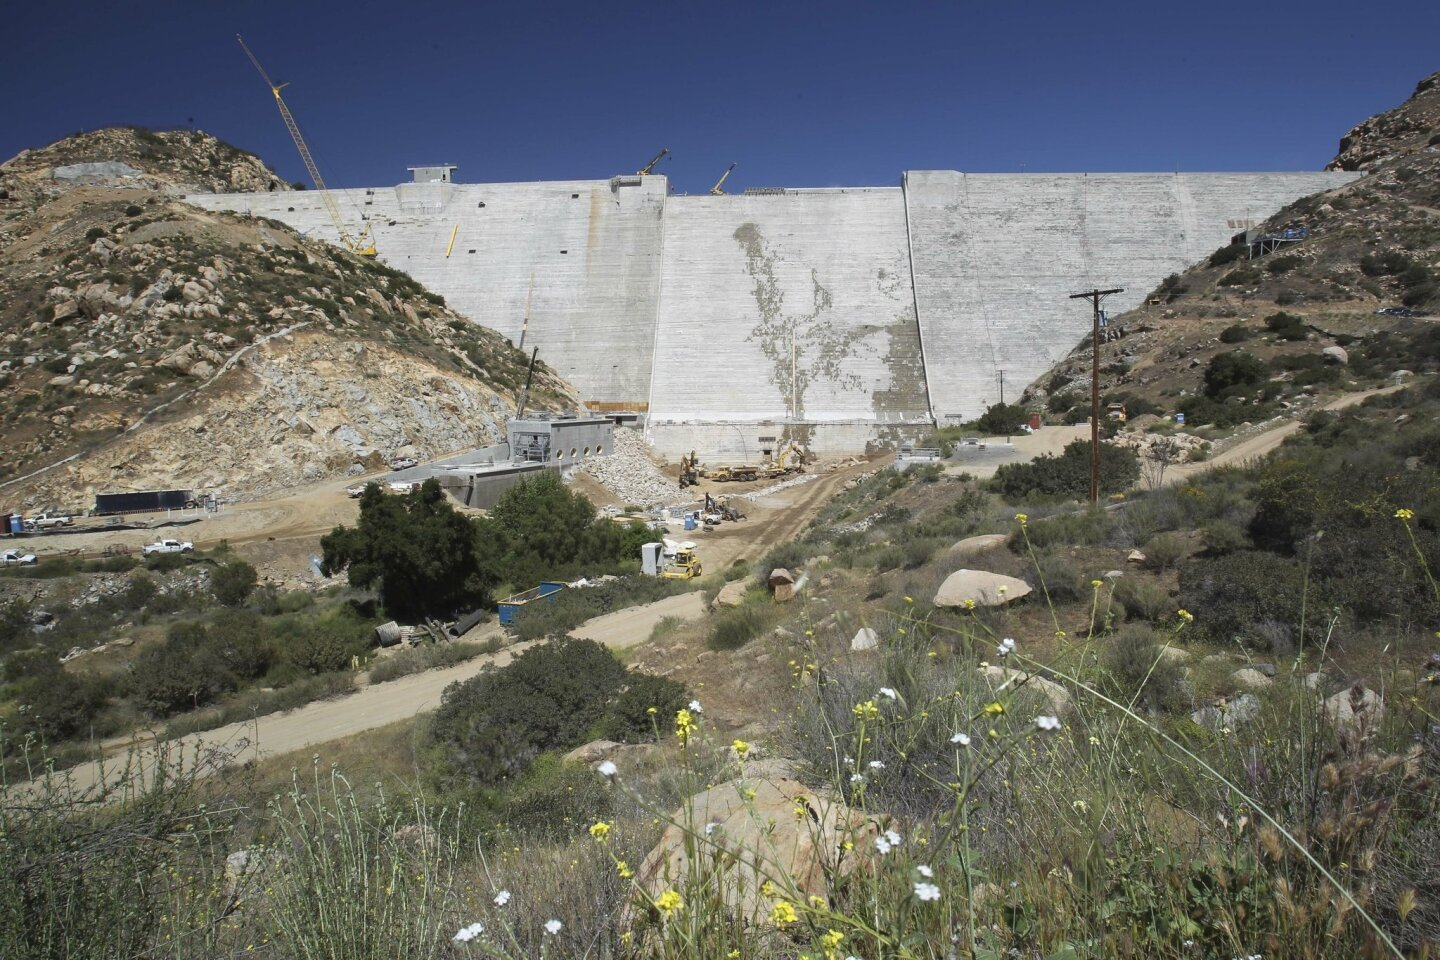 Crews worked on the downstream side of the San Vicente dam in 2013, moving large granite boulders around to line the channel below the dam.  The dam was raised 117 feet for a total height of to make it a total of 337 feet tall.